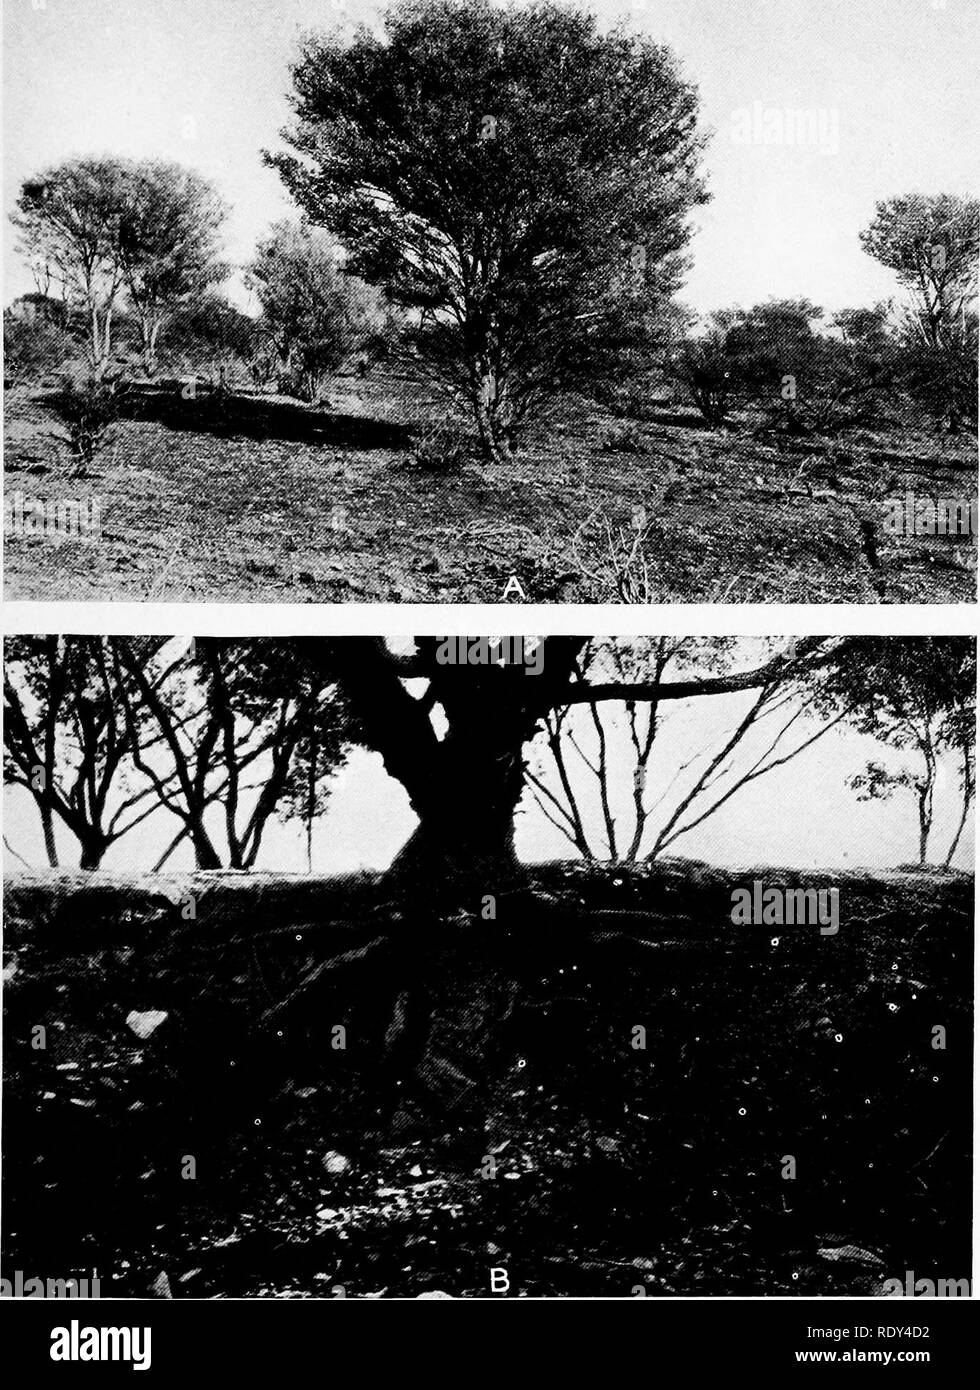 ". Plant habits and habitats in the arid portions of South Australia. Plant ecology; Botany; Desert plants. CANNON PLATE 19. A. Acacia aneura, the mulga, at Ooldea. B. Eucalyptus oleosa by a wash at the eastern base of Mount Deception Range. The prominent stem base and enlarged crown of the taproot, both characteristic of the ""mallee,"" are shown. Copley.. Please note that these images are extracted from scanned page images that may have been digitally enhanced for readability - coloration and appearance of these illustrations may not perfectly resemble the original work.. Cannon, Will - Stock Image"